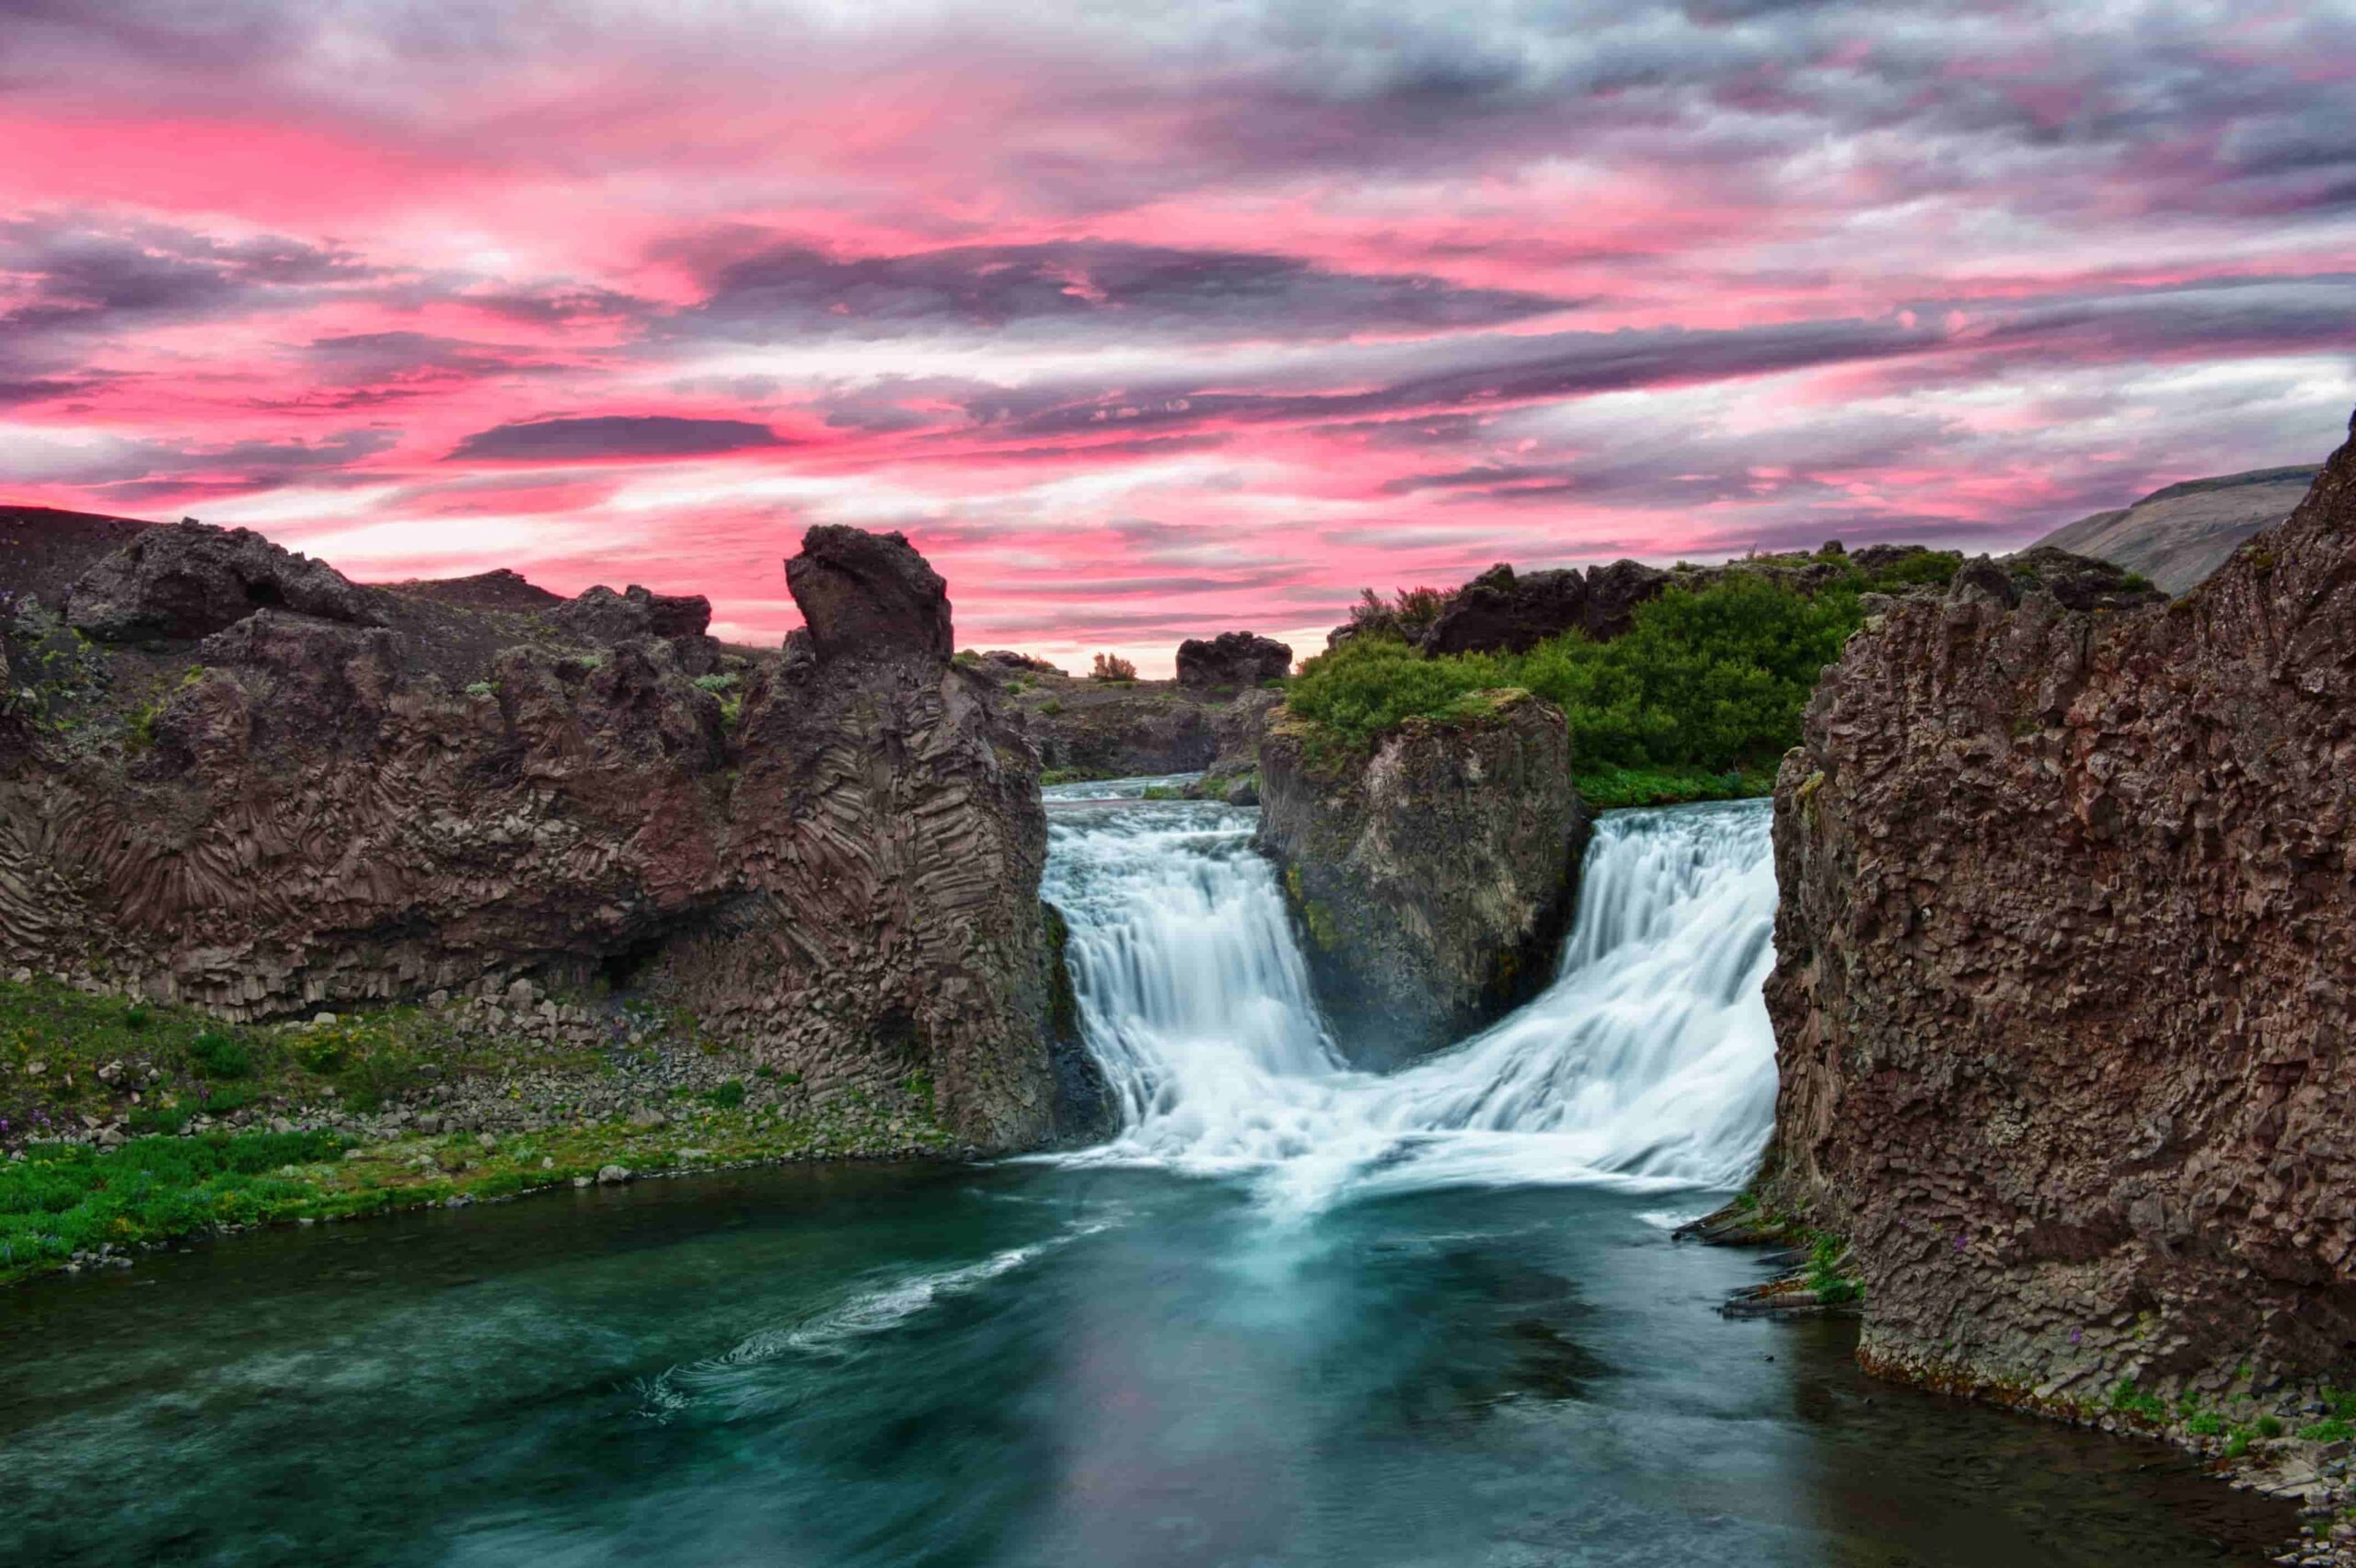 sunset at Hjálparfoss waterfall in the Golden Circle Highlands of Iceland